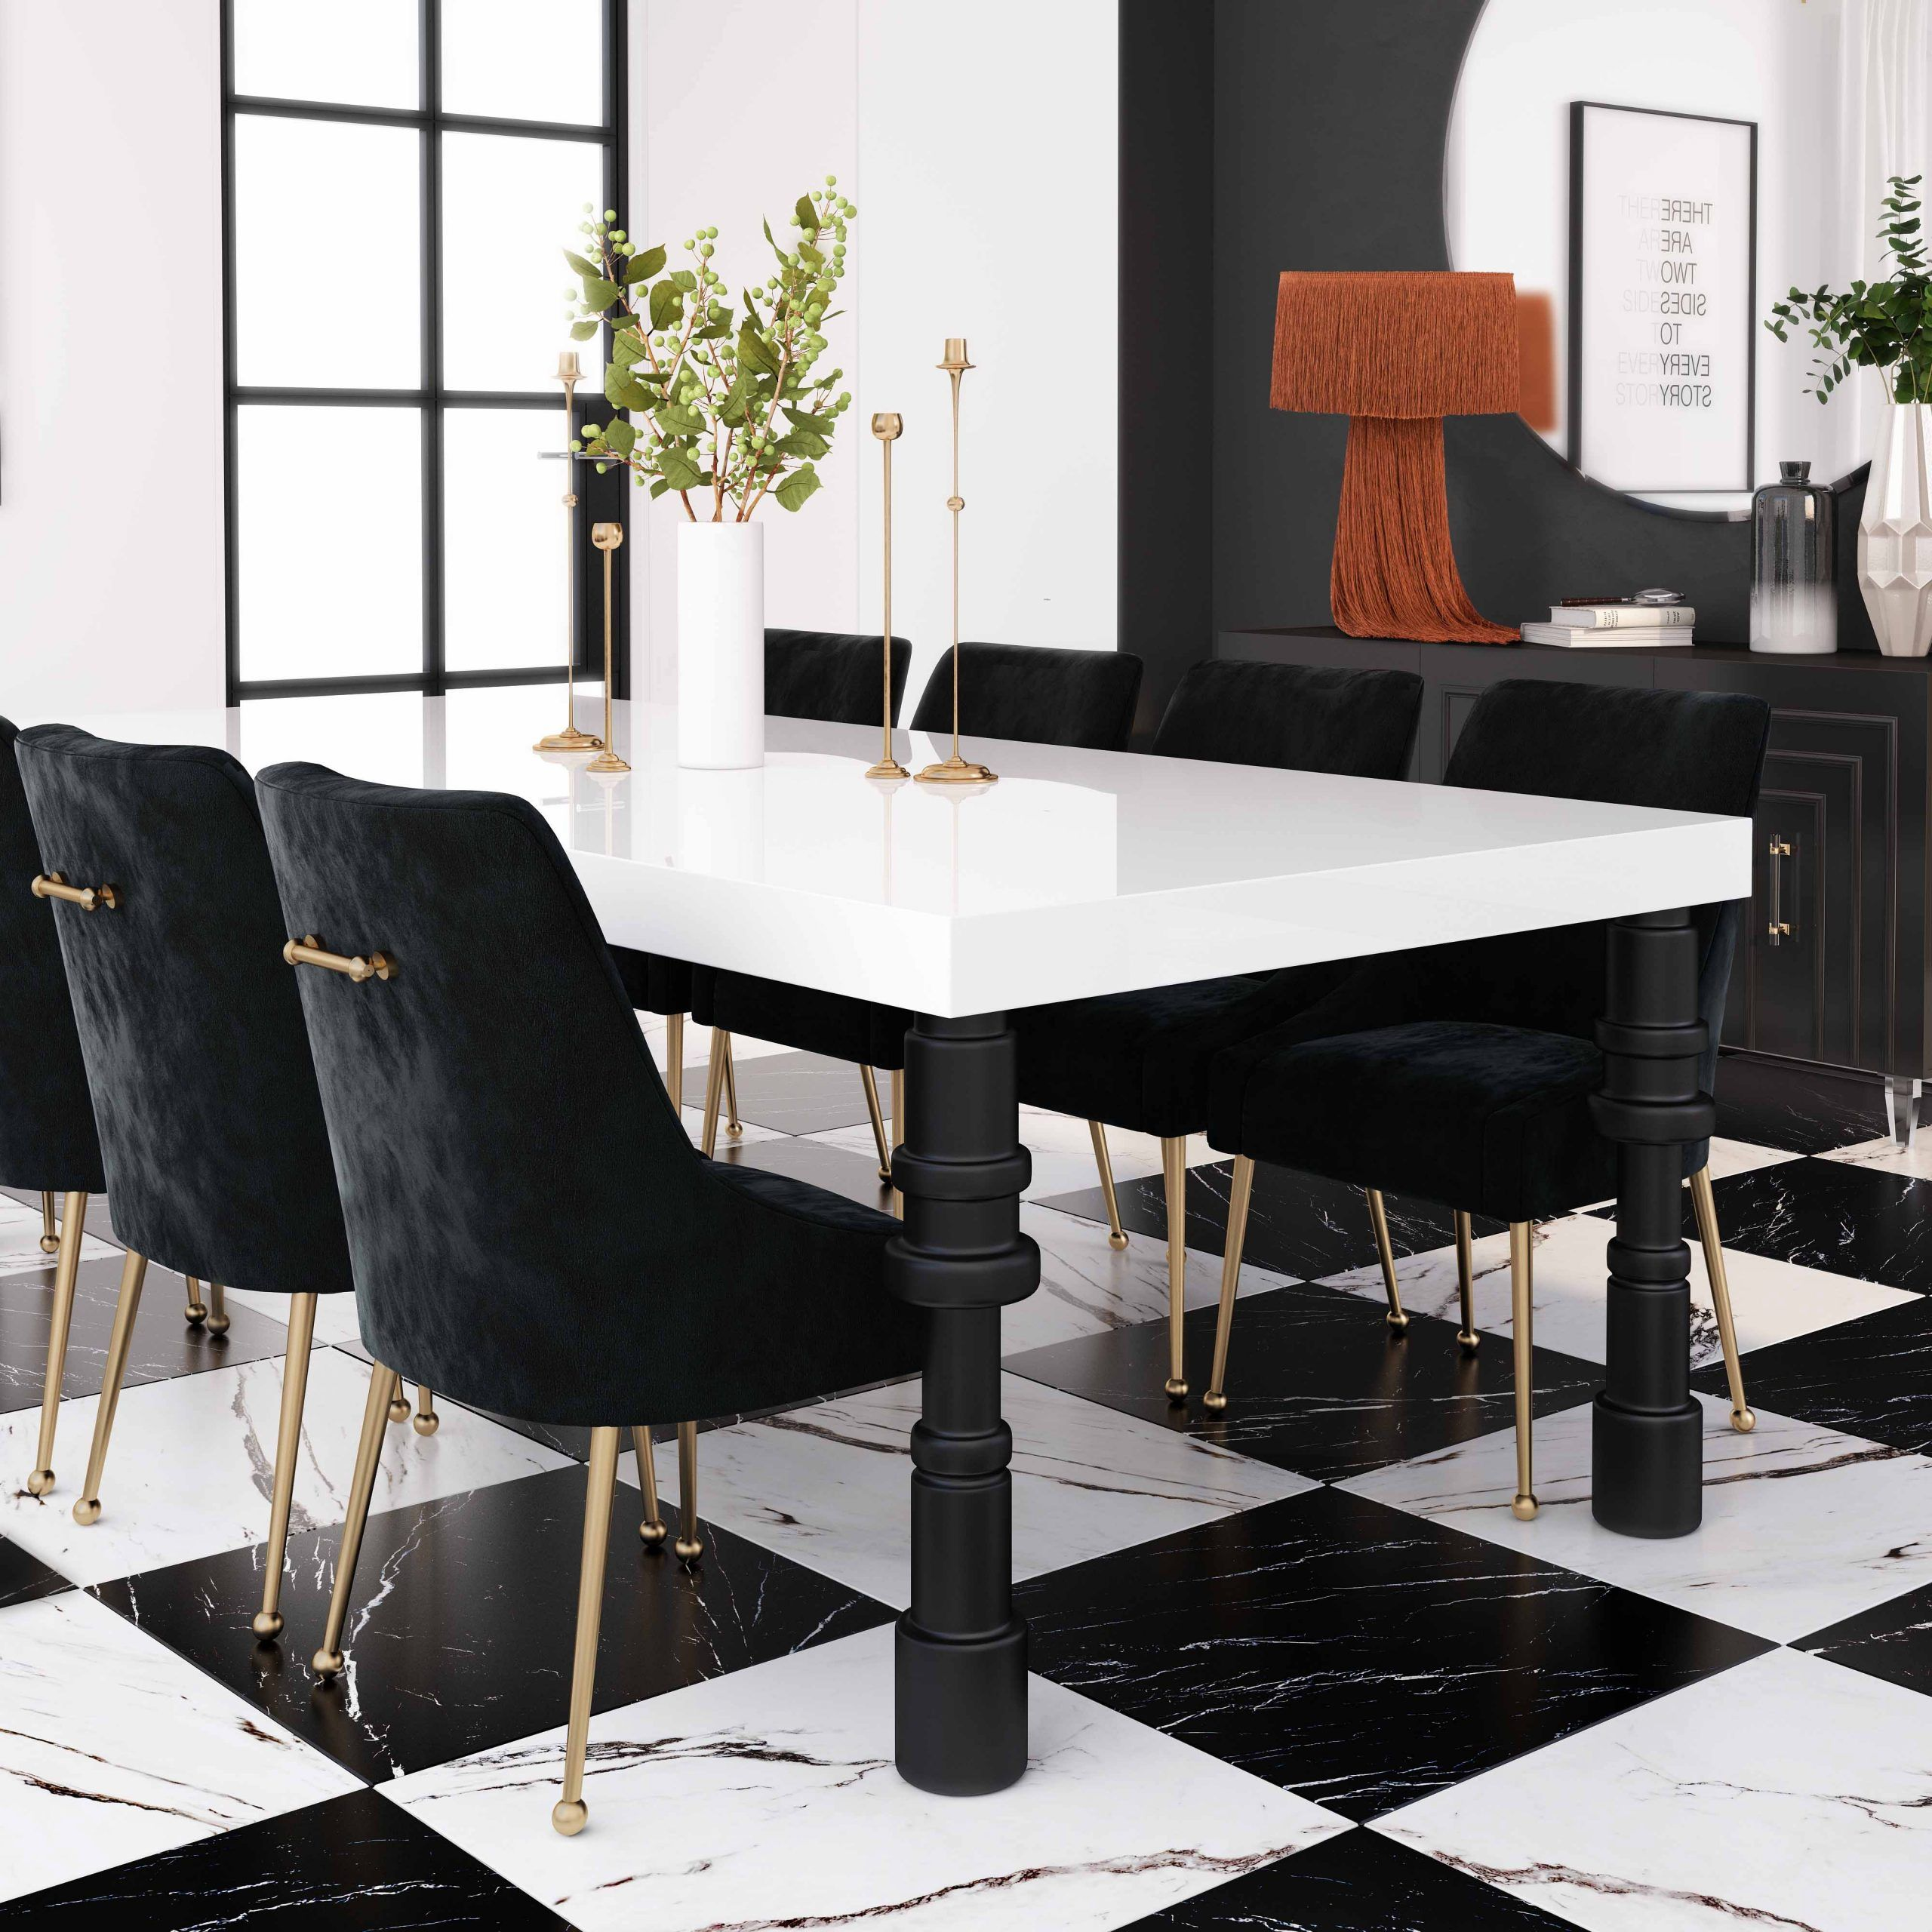 Spindle Dining Table Tov Furniture In 2021 Black Dining Room Black And White Dining Room Concrete Dining Table